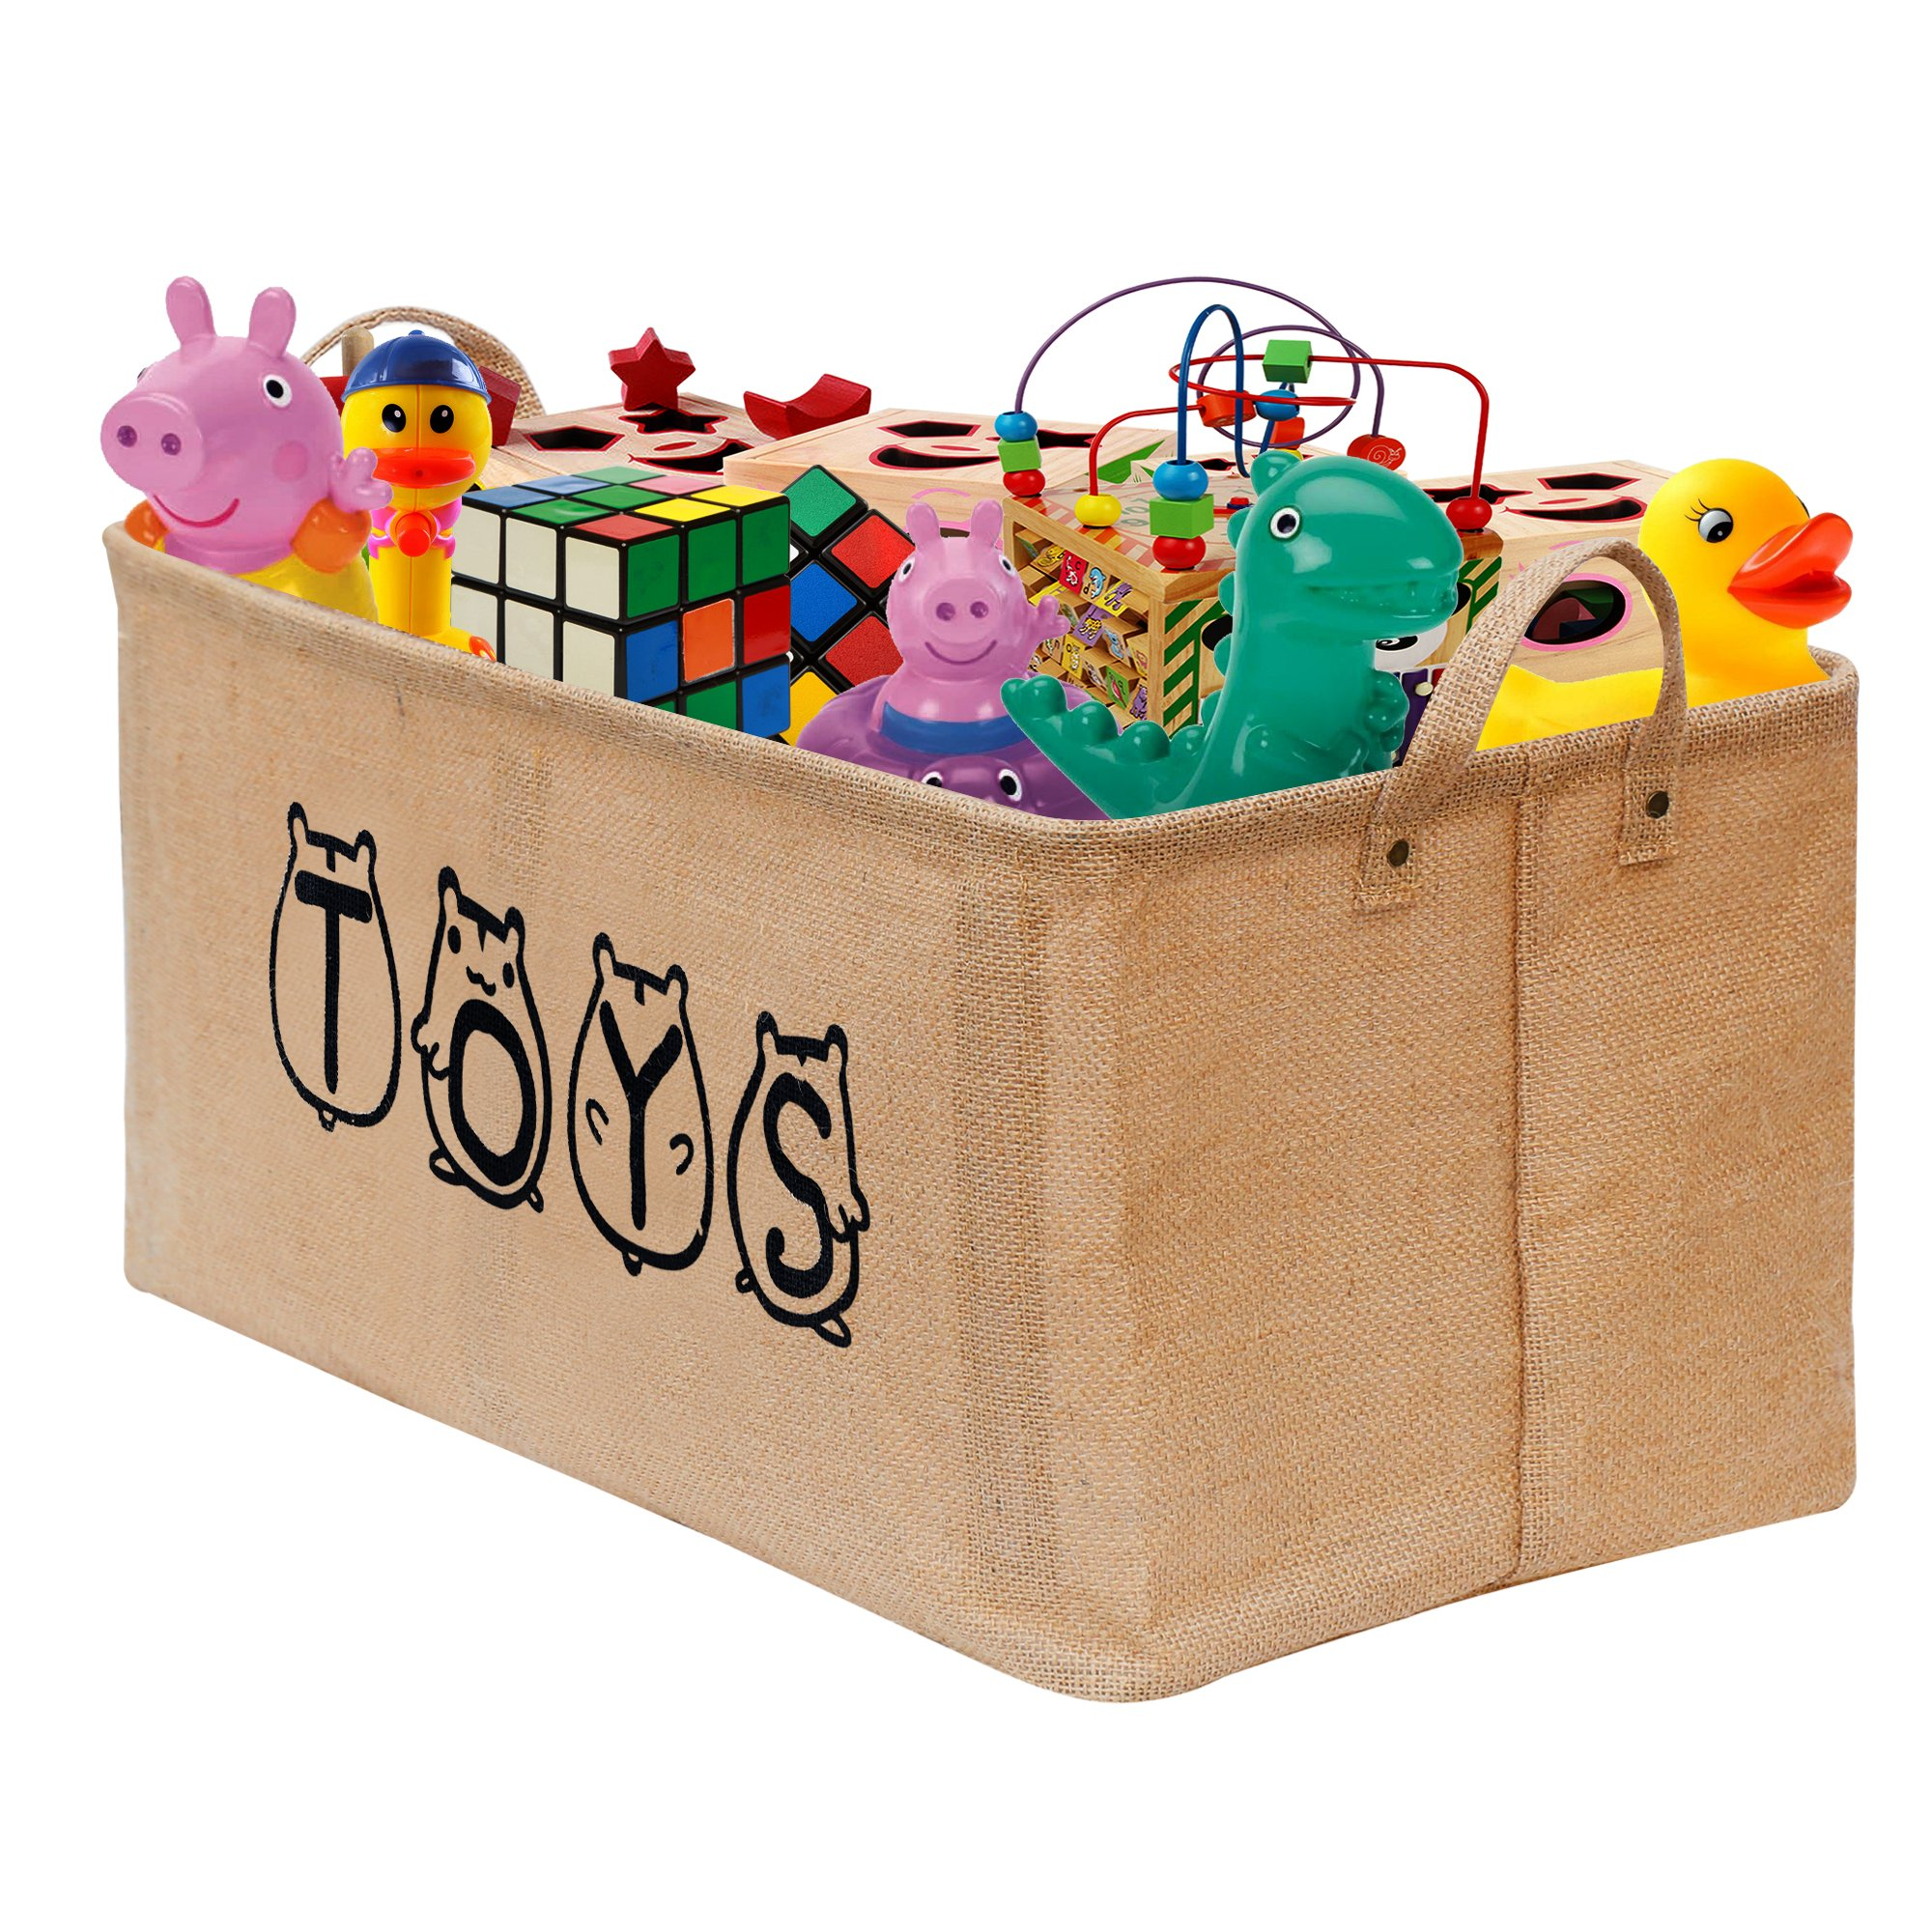 "Gimars 20"" Cute Well Holding Shape Jute Toy Chest Baskets Storage Bins Organizer - Perfect for Organizing Toy Storage, Baby Toys, Kids Toys, Dog Toys, Baby Clothing, Children Books, Gift Baskets"